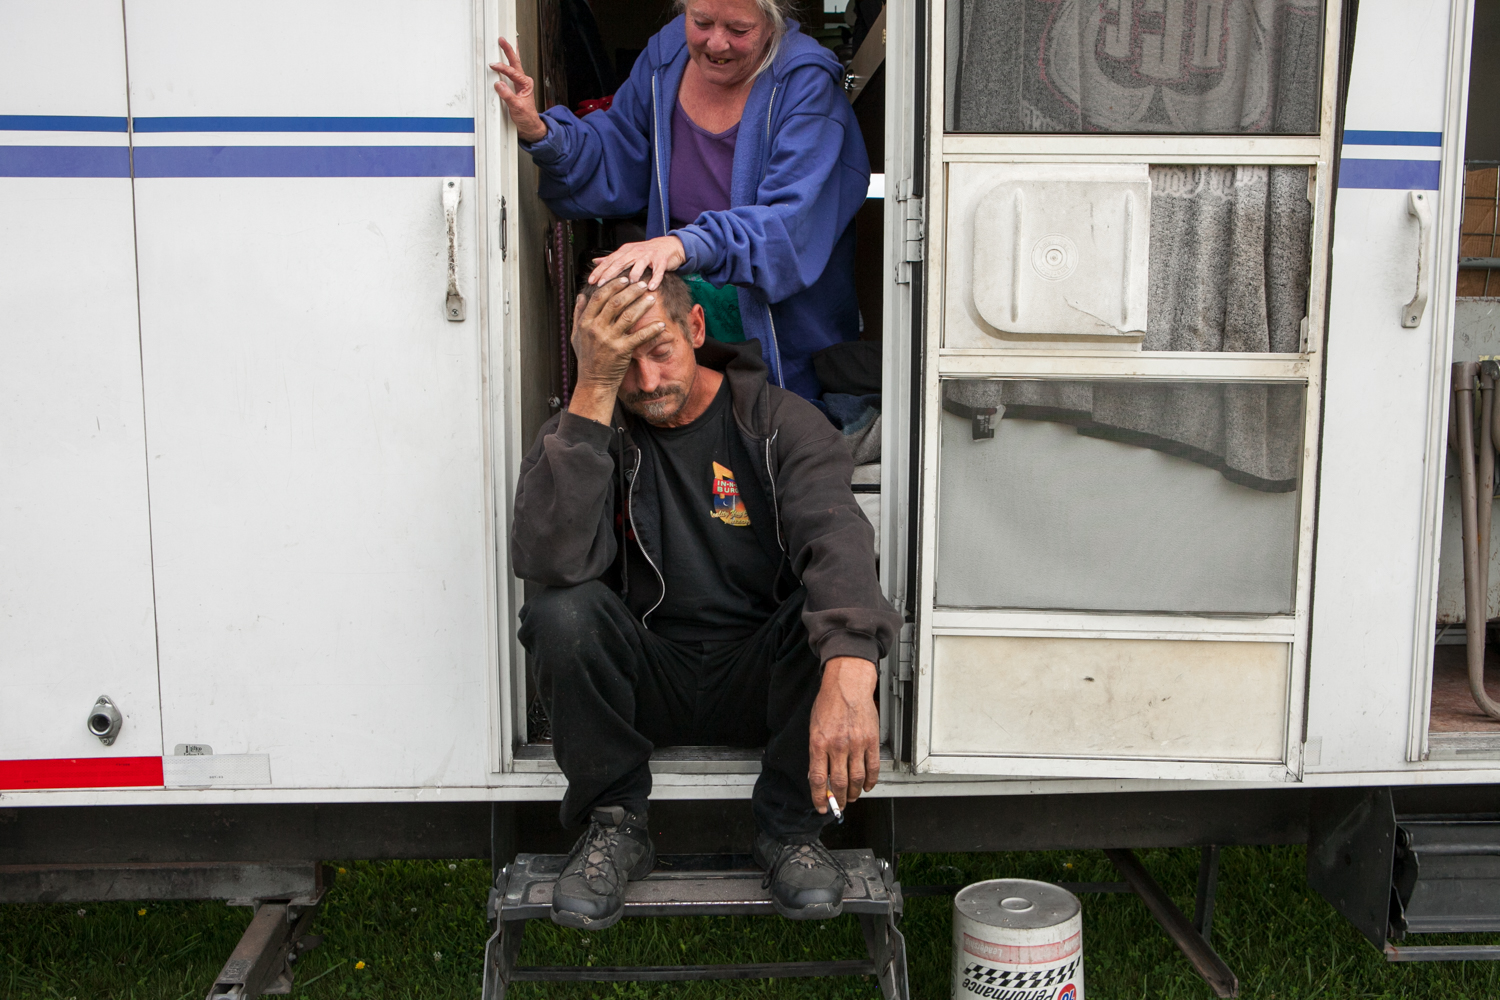 The traveling carnival has a tractor-trailer that is outfitted with 8 individual rooms that act as sleeping quarters / living areas. This married couple shares one of the rooms. As the man sits on his front step and smokes a cigarette, his wife comforts him.